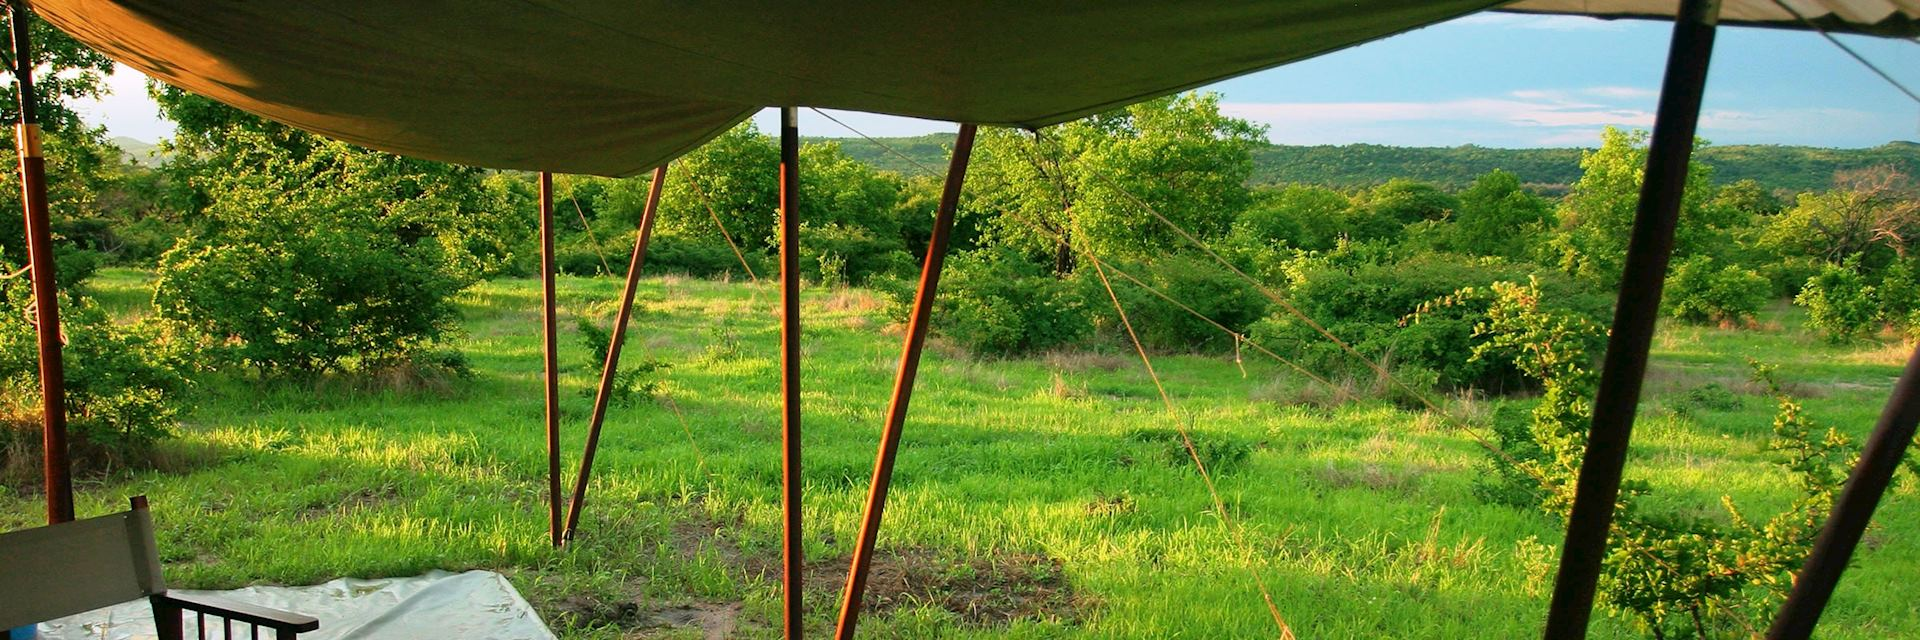 The tented camp of Kwihala in Ruaha National Park